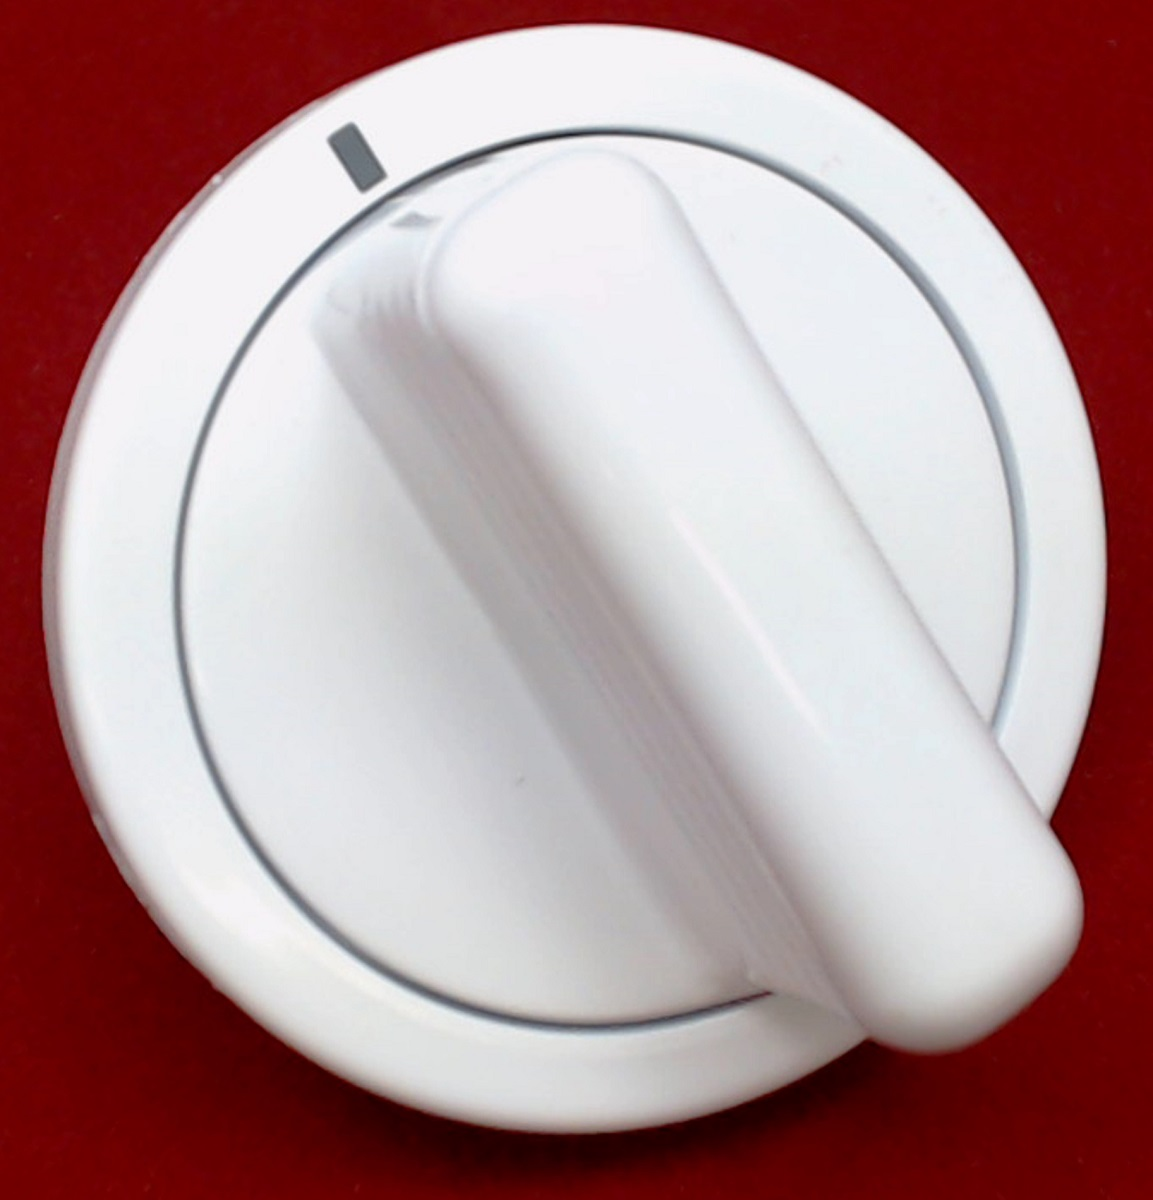 We01x10160 Dryer Timer Knob White For General Electric